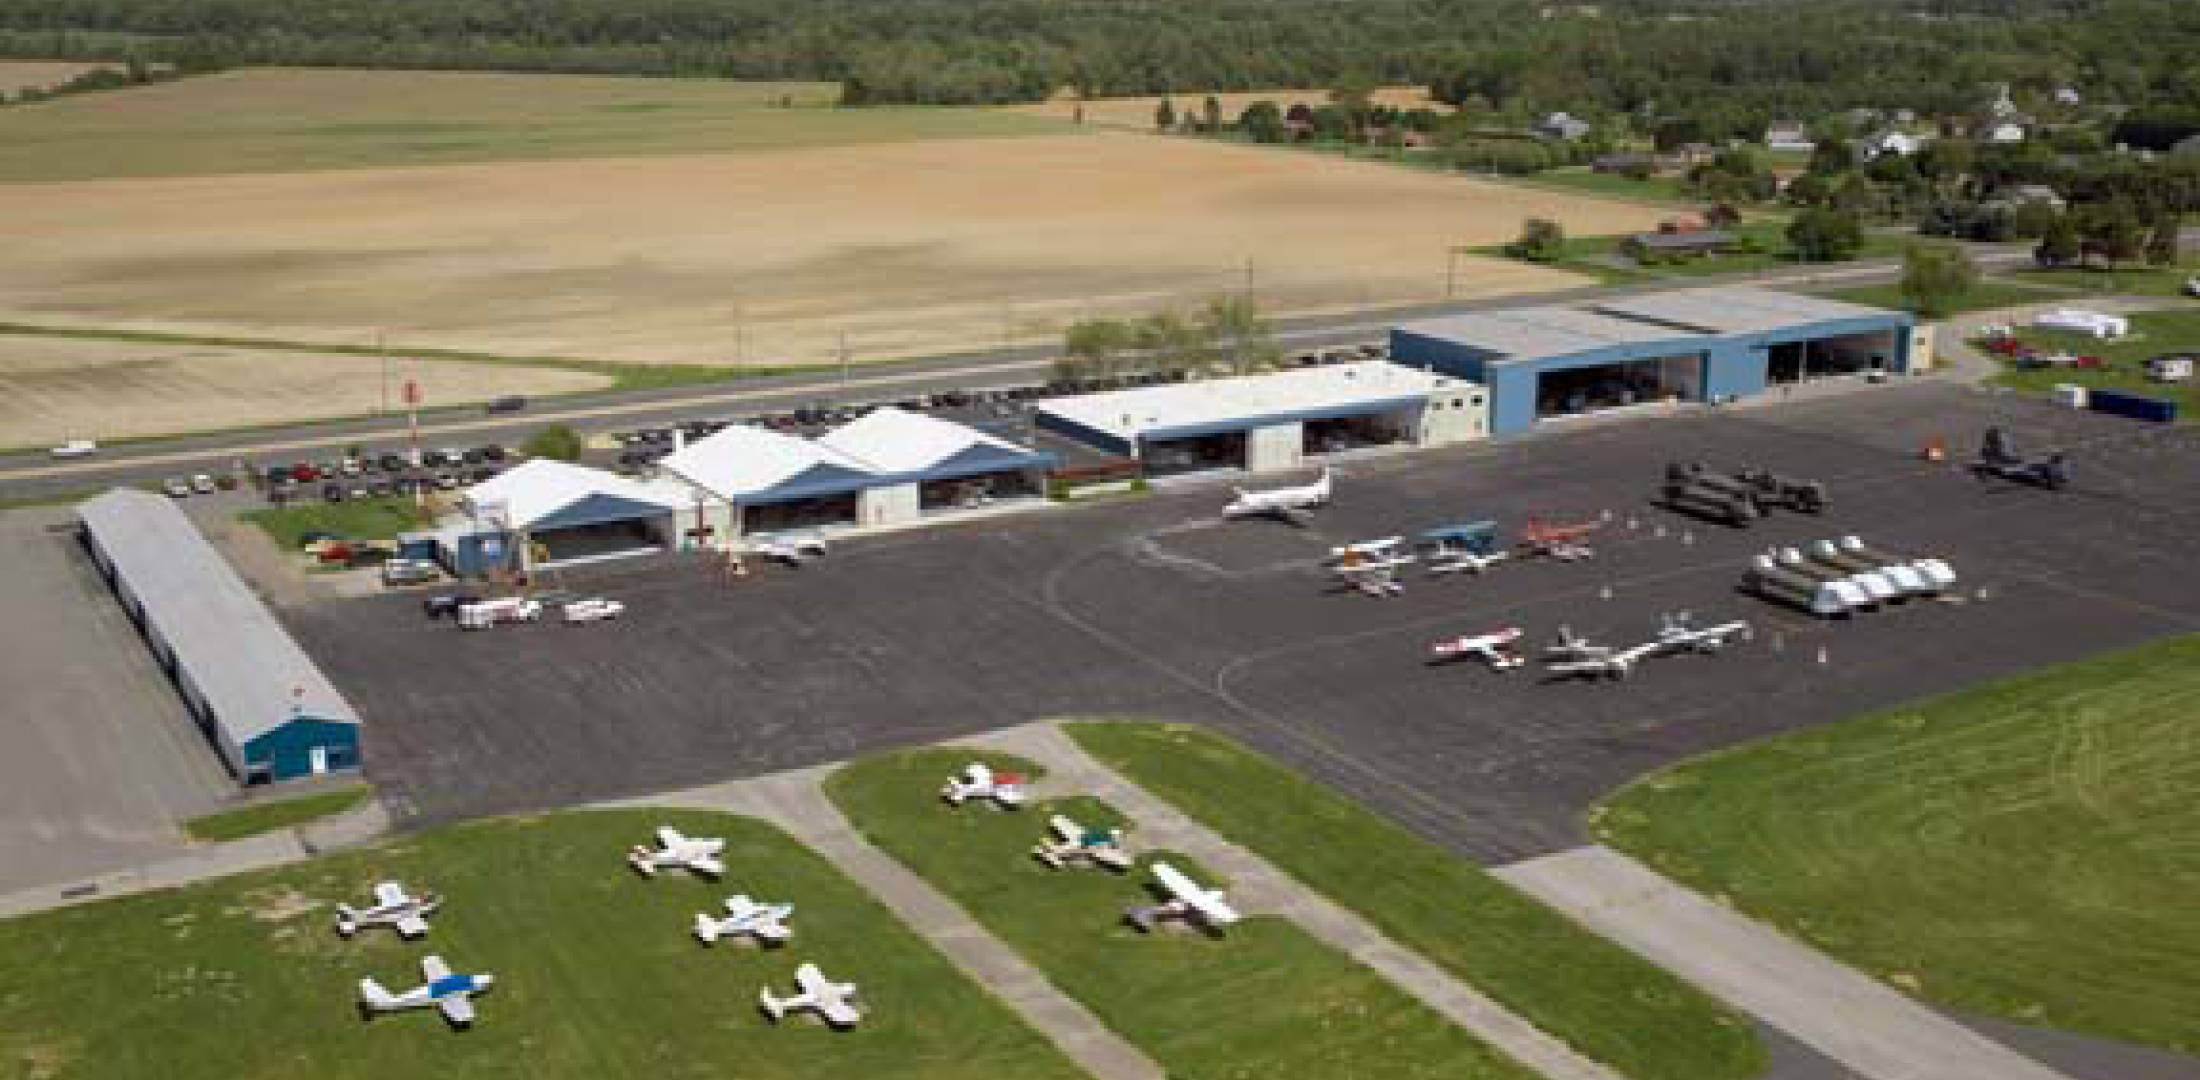 Summit Aivation's 78,000-sq-ft expansion project includes a new hangar, paint